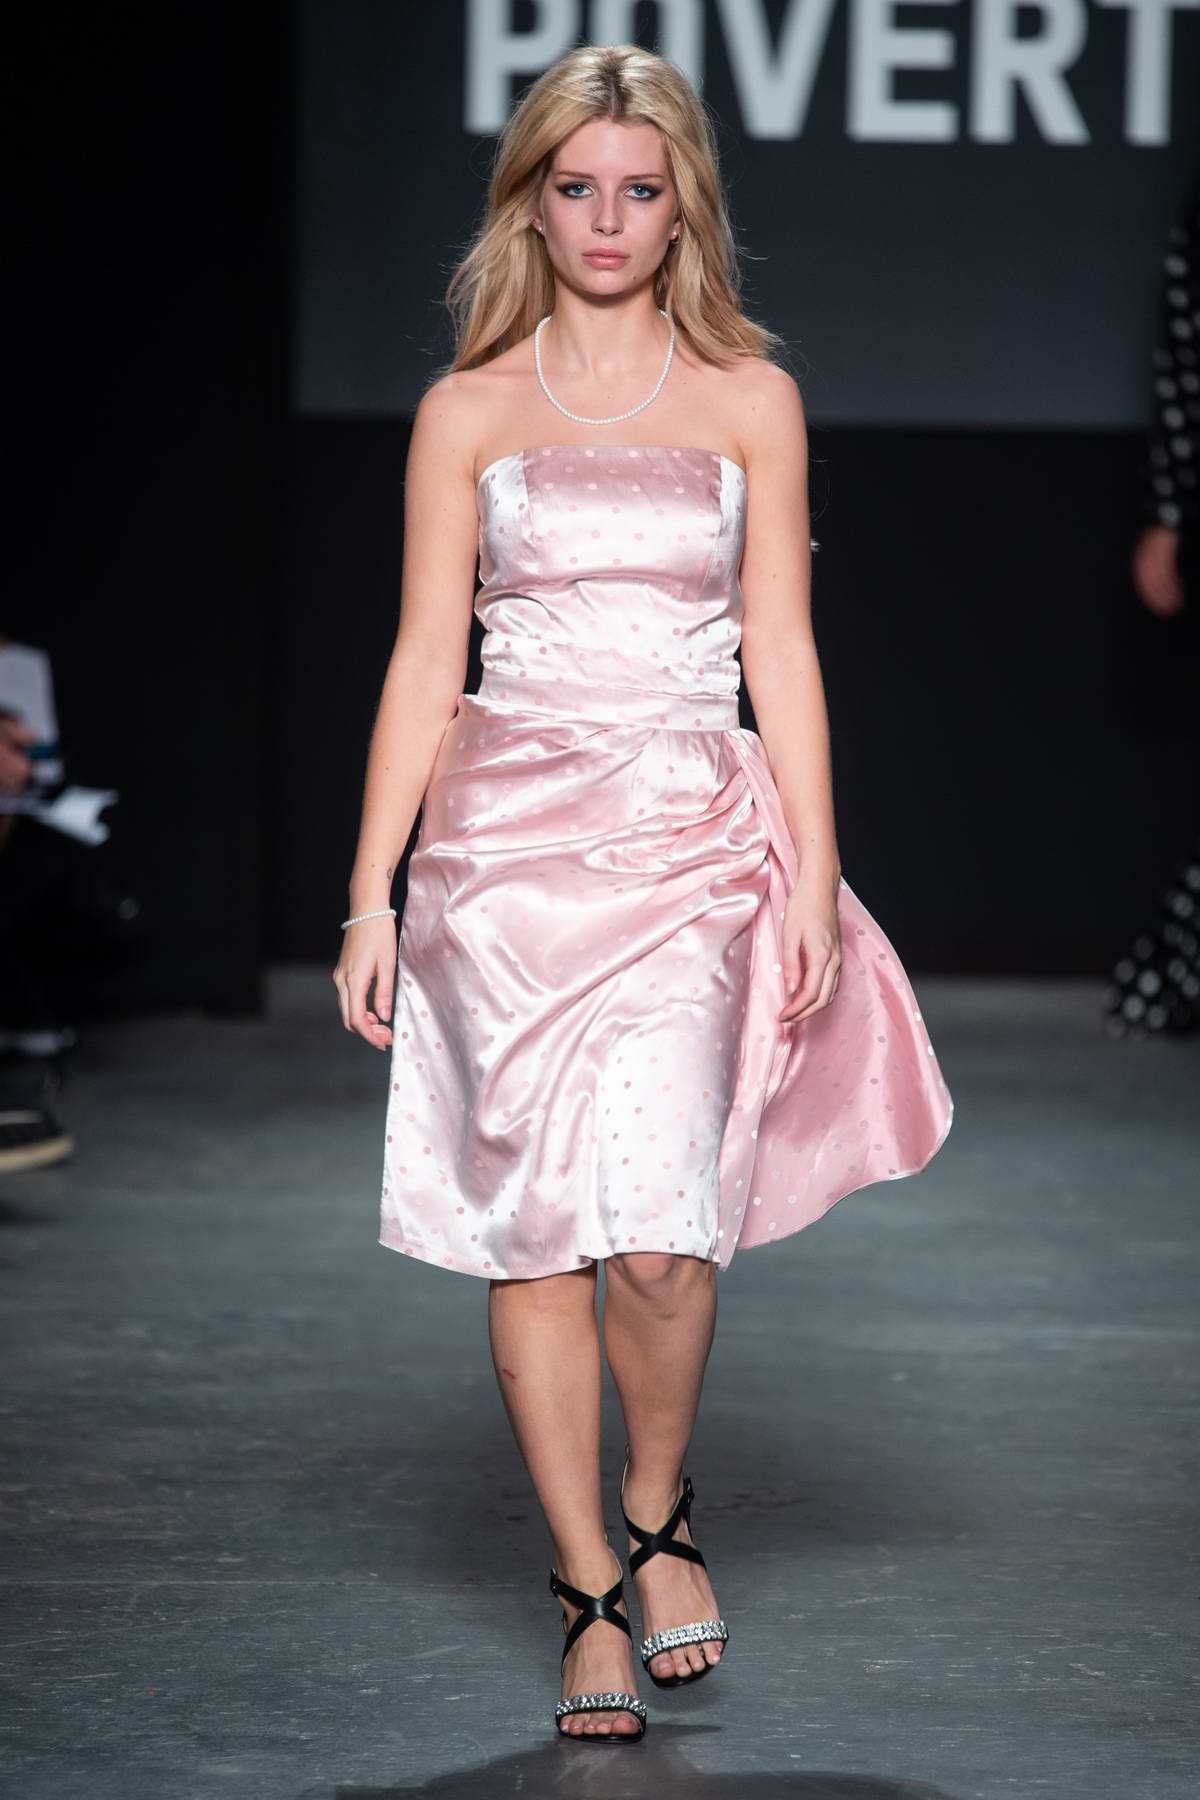 Lottie Moss walks the runway for Oxfam Fighting Poverty Fashion Show during London Fashion Week in London, UK